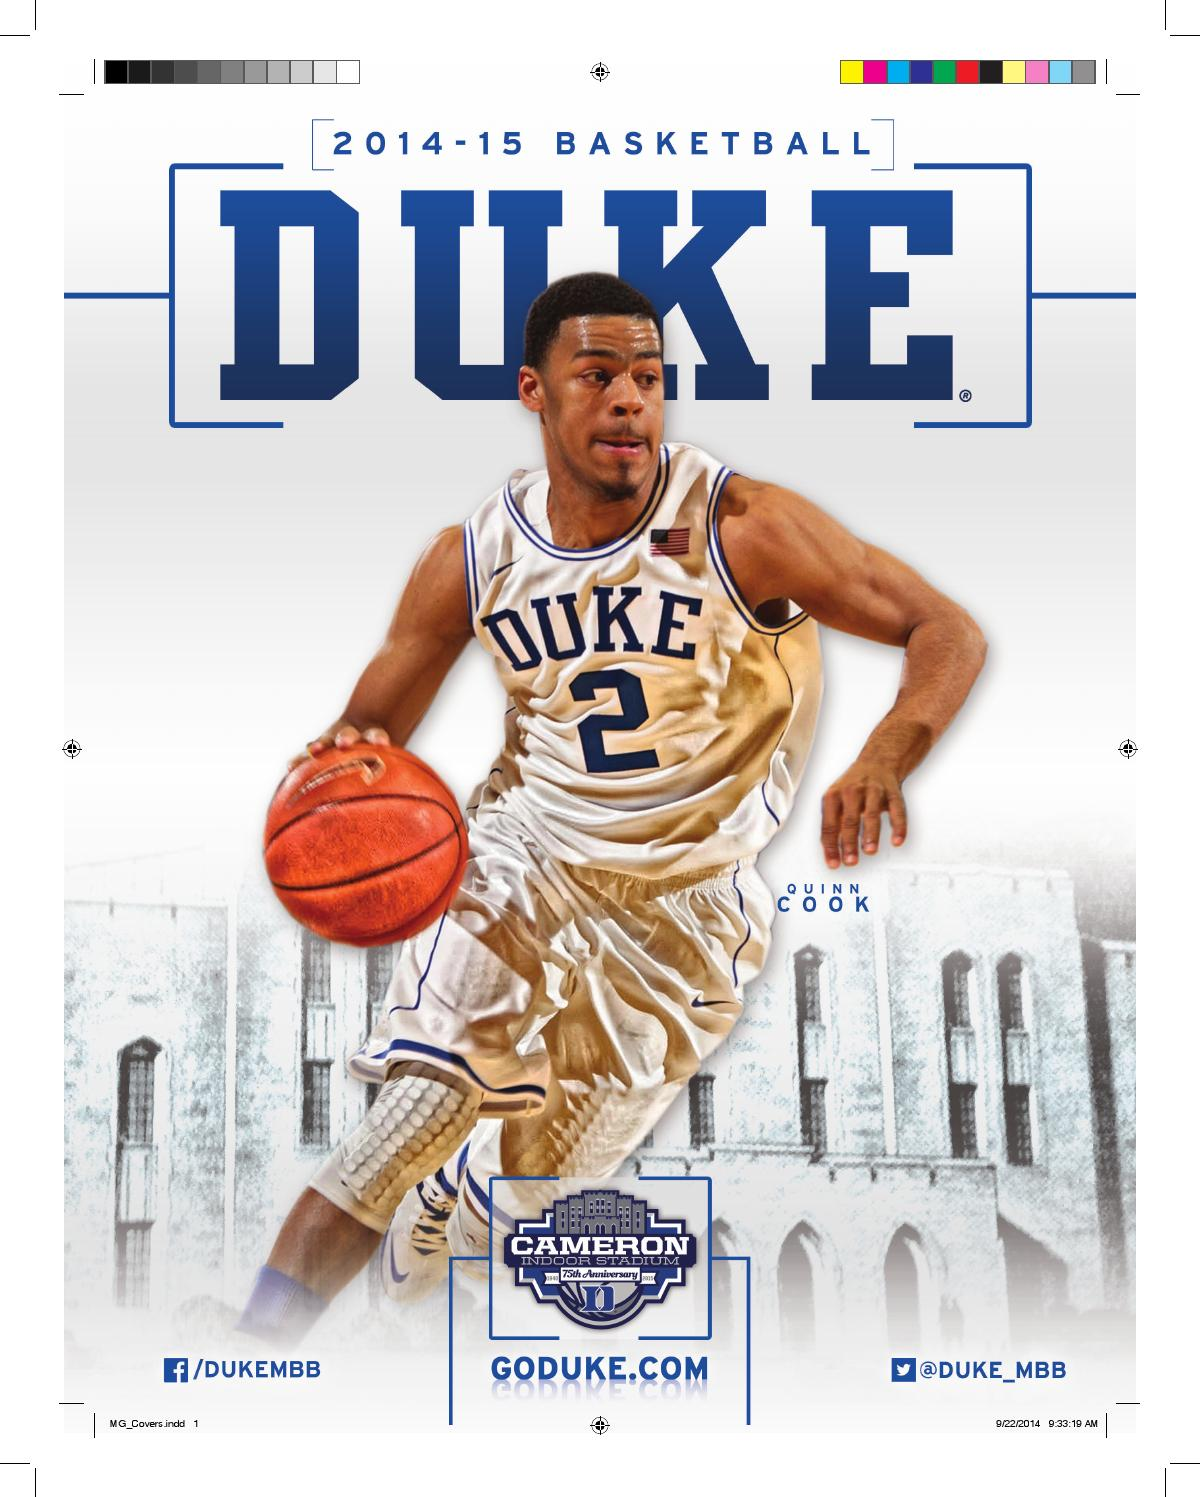 491997f013b7 2014-15 Duke Men s Basketball Media Guide by Duke Athletics - issuu